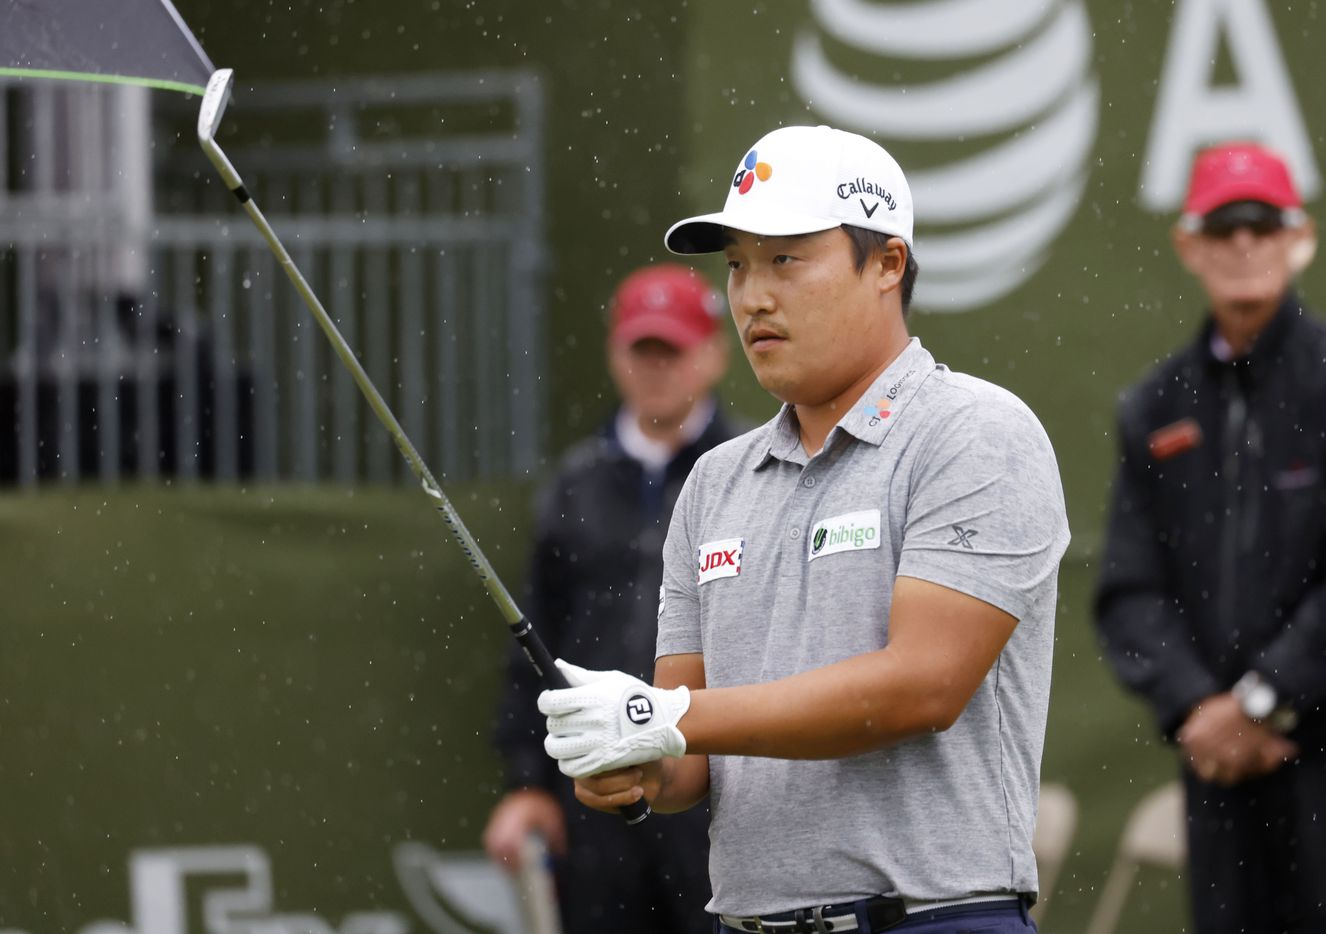 Kyoung-Hoon Lee prepares to tee off on the 17th hole during round 4 of the AT&T Byron Nelson  at TPC Craig Ranch on Saturday, May 16, 2021 in McKinney, Texas. (Vernon Bryant/The Dallas Morning News)